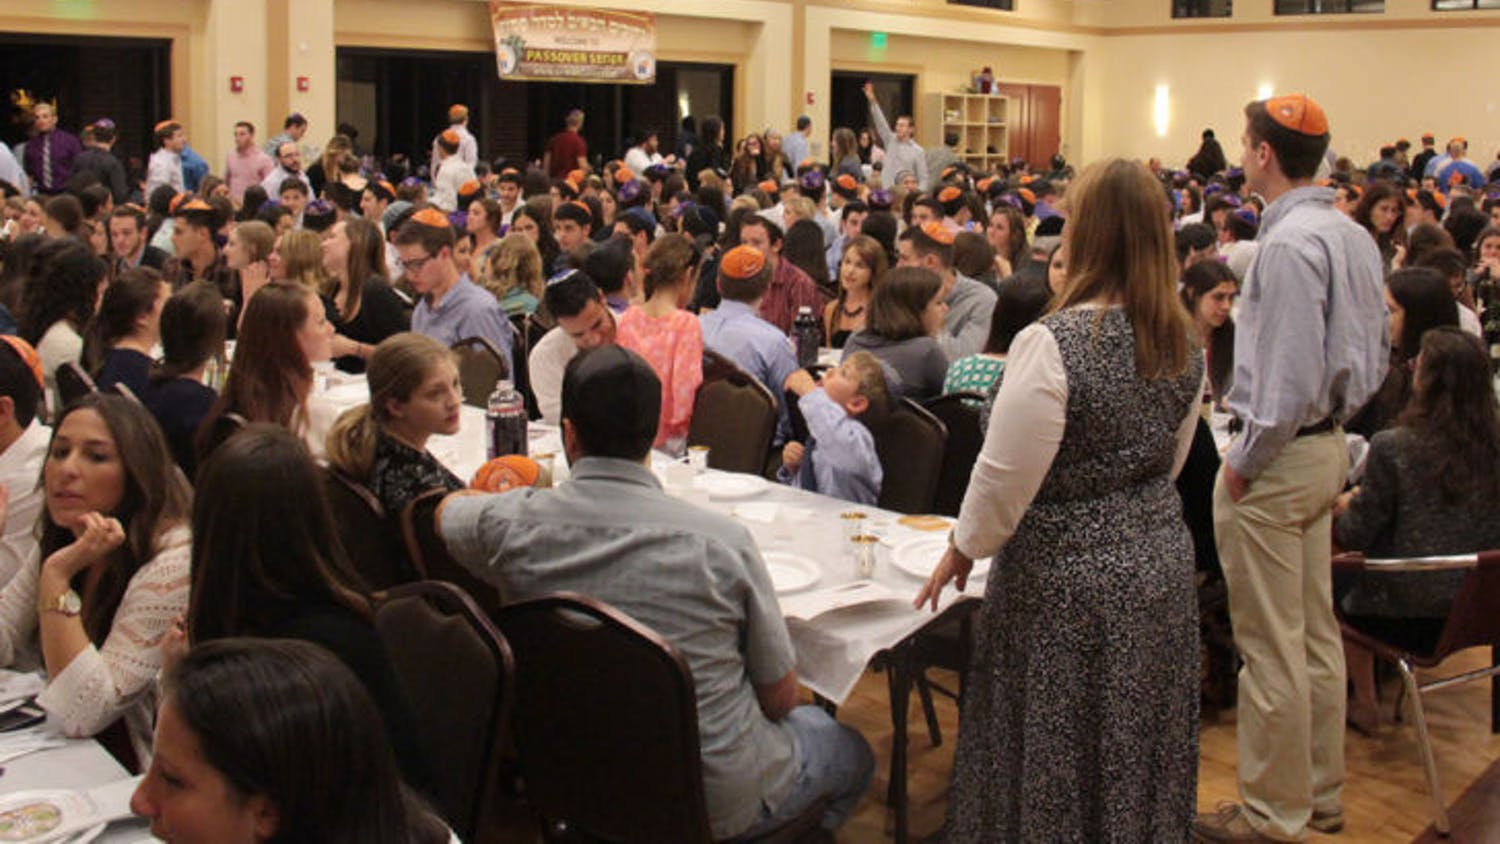 Students and residents gather at the Lubavitch-Chabad Jewish Student and Community Center for Seder on Monday evening. The event celebrated the first night of the Jewish holiday of Passover.